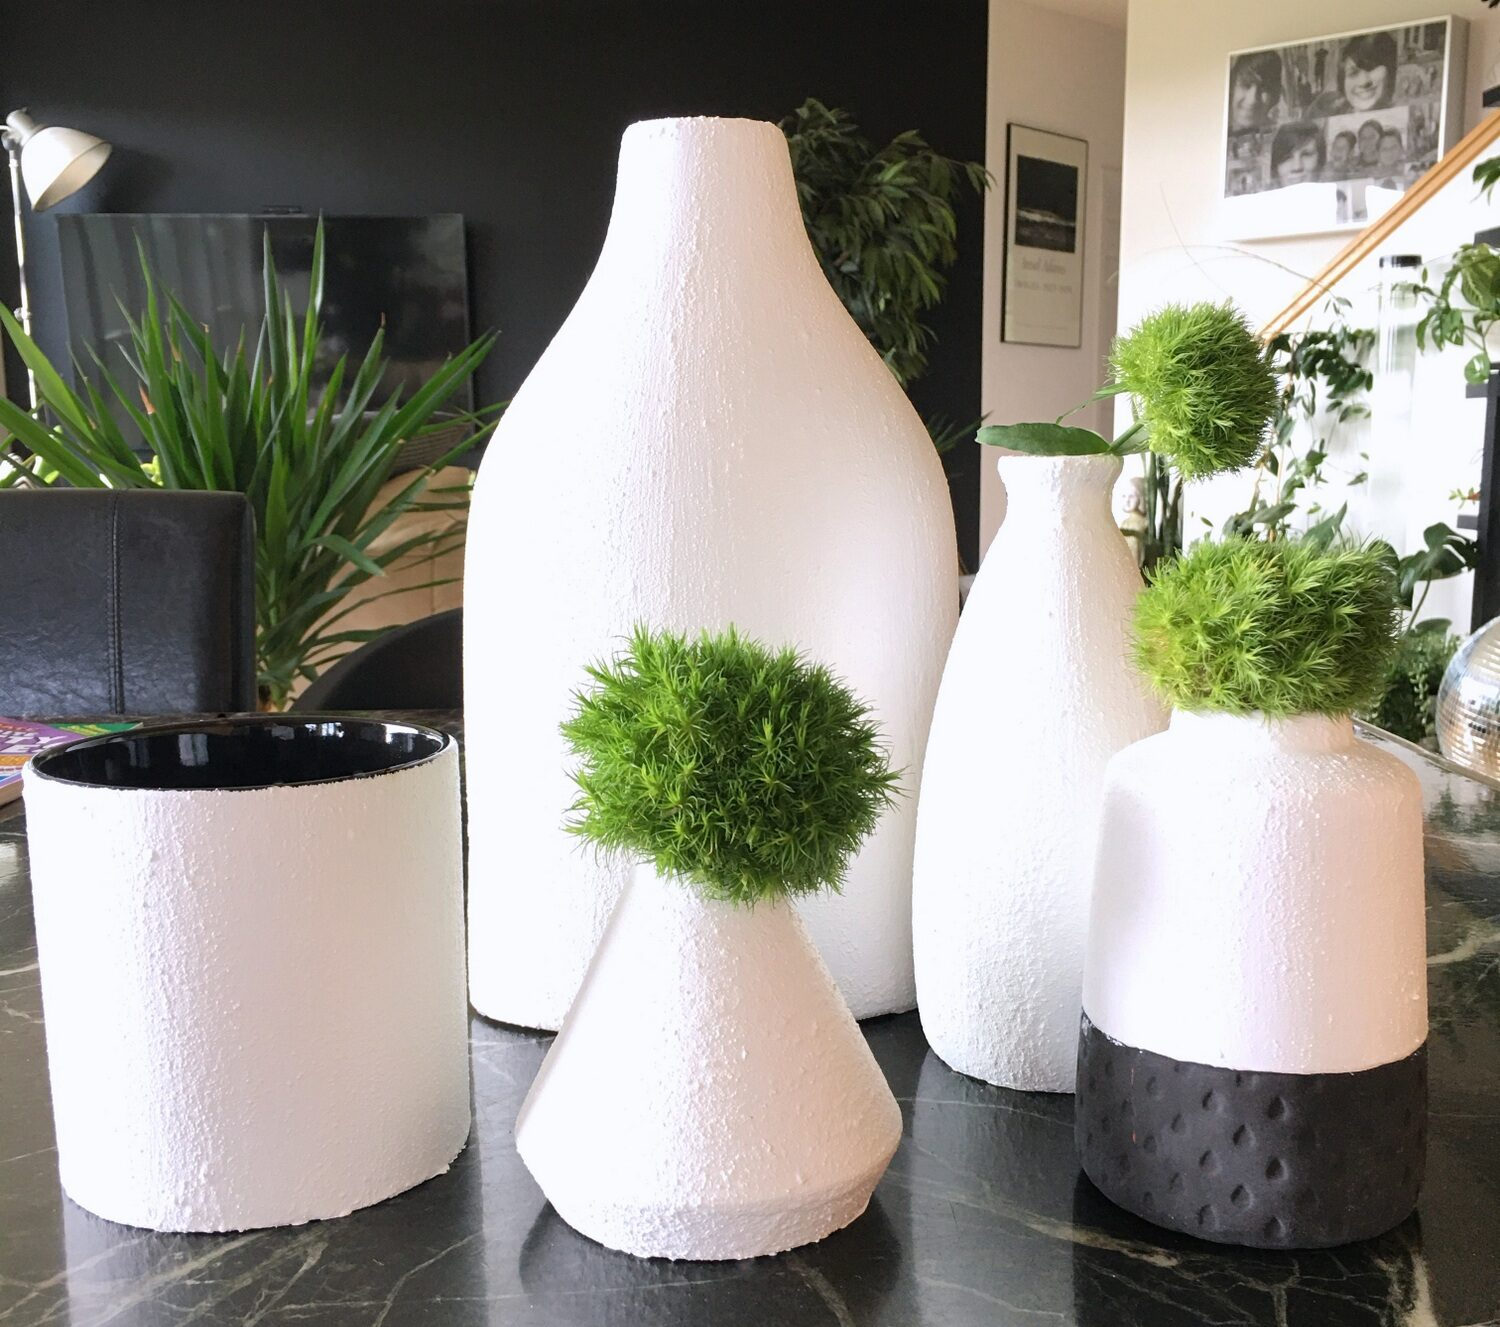 DIY: How to Make Any Vase Look Like Ceramic With Paint and ...